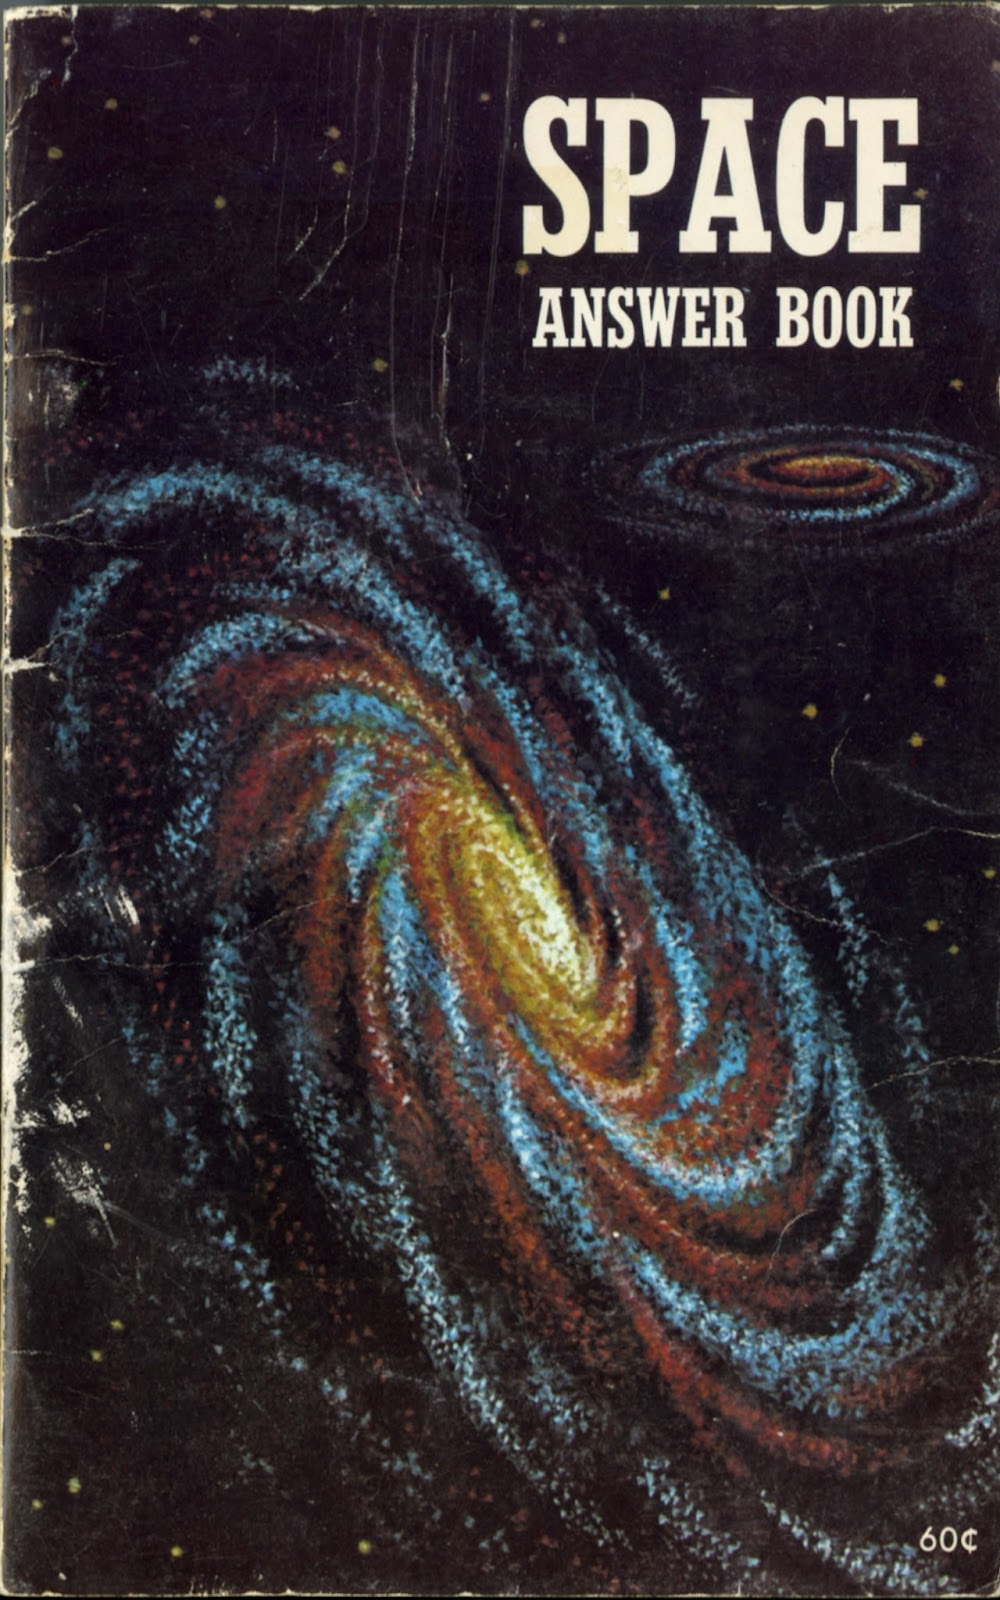 Dreams of Space - Books and Ephemera: Space Answer Book (1972)